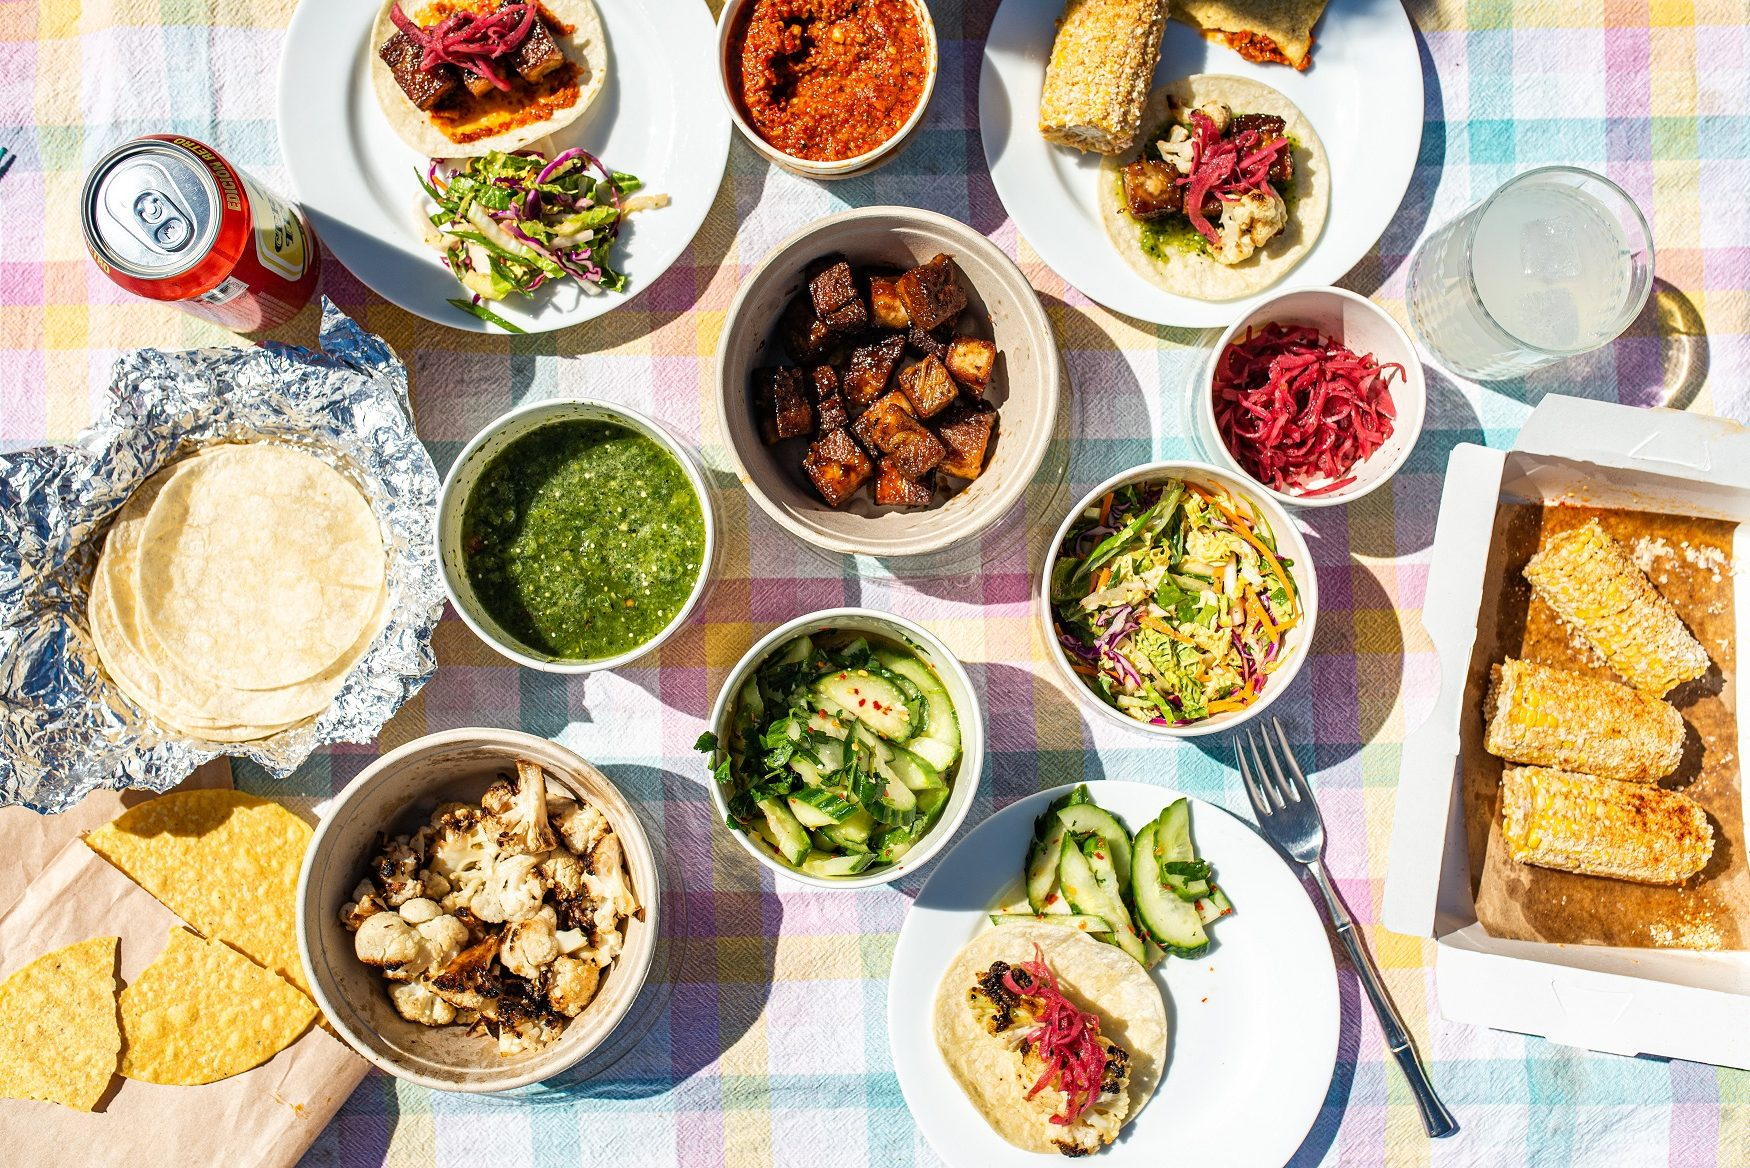 Bold flavors everyone will 💙 love delivered straight to your door. @bartacolife's family packs are the perfect solution for an easy dinner. Choose from a 🌮 taco pack (makes 16 tacos) or roasted 🍗 chicken pack, both served with salsa verde + chips and your choice of 3 sides. $39.50 per pack – feeds four. Order 📲 online at order.bartaco.com and enjoy #bartacoathome.